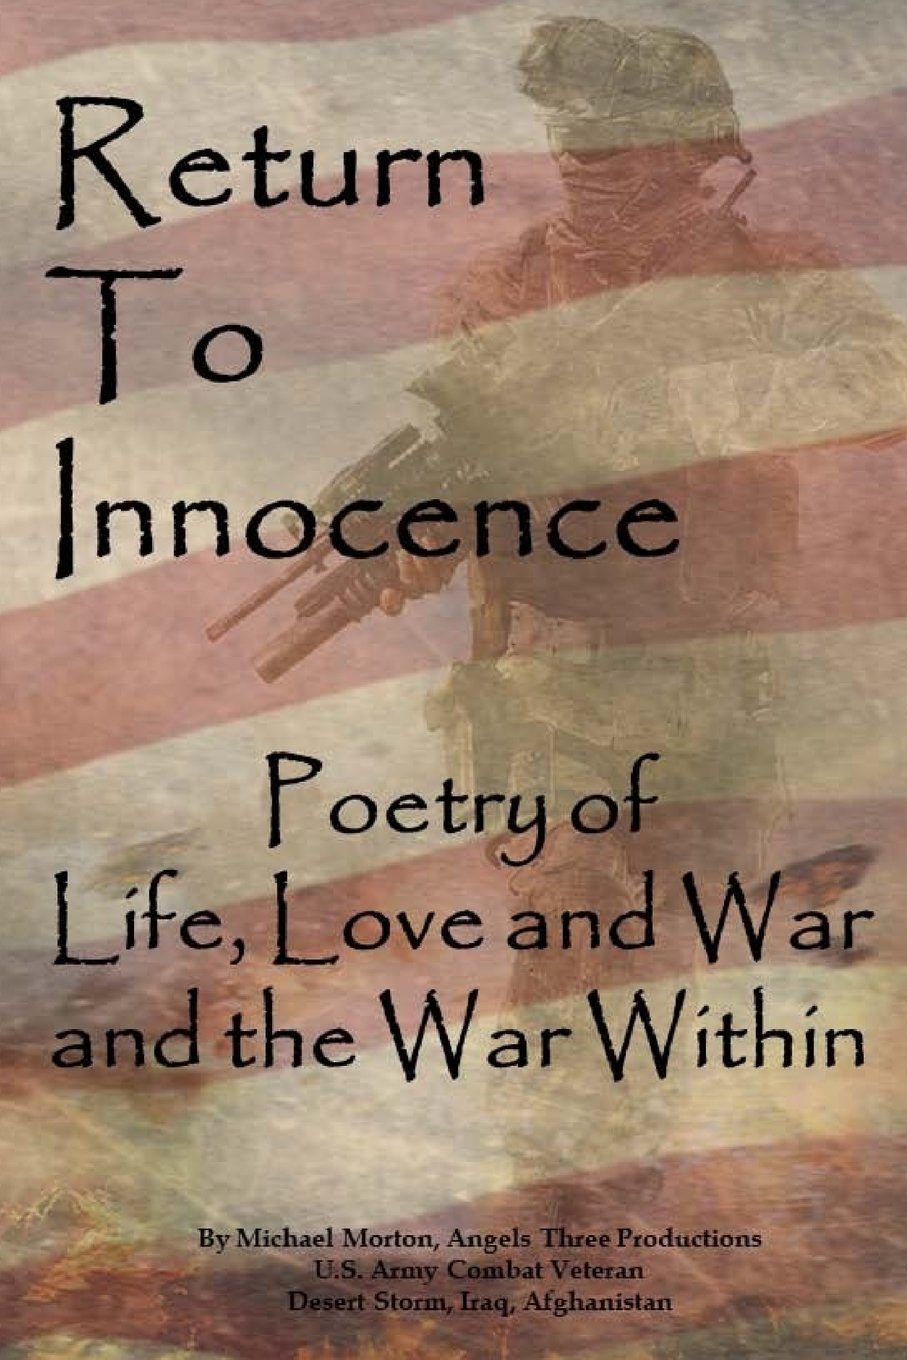 Return to Innocence: Poetry of Life, Love, War and the War Within